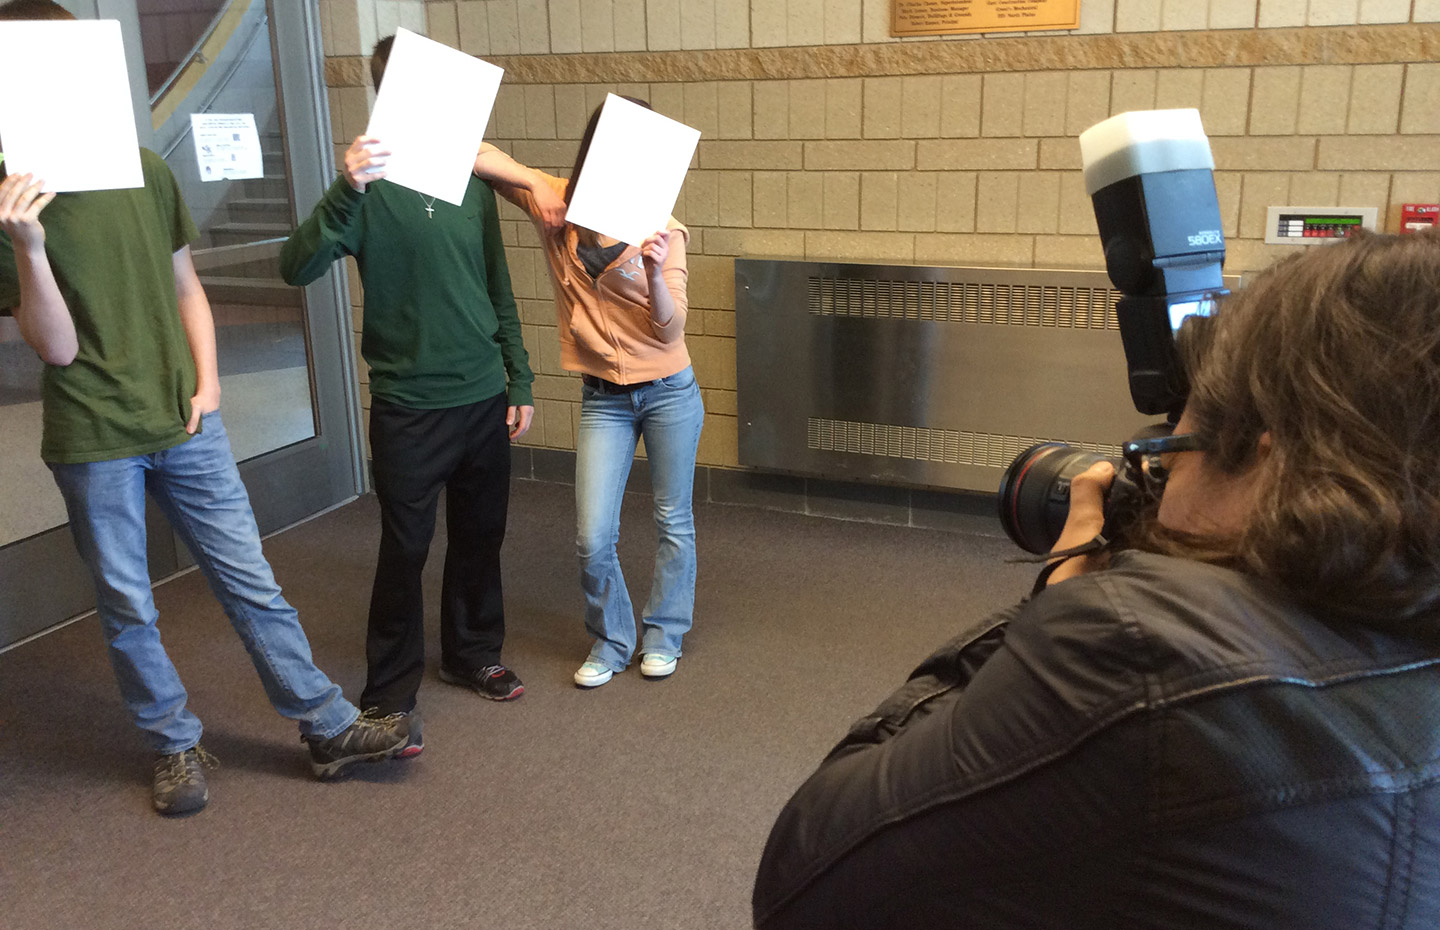 Man taking photo of three kids holding paper over their faces